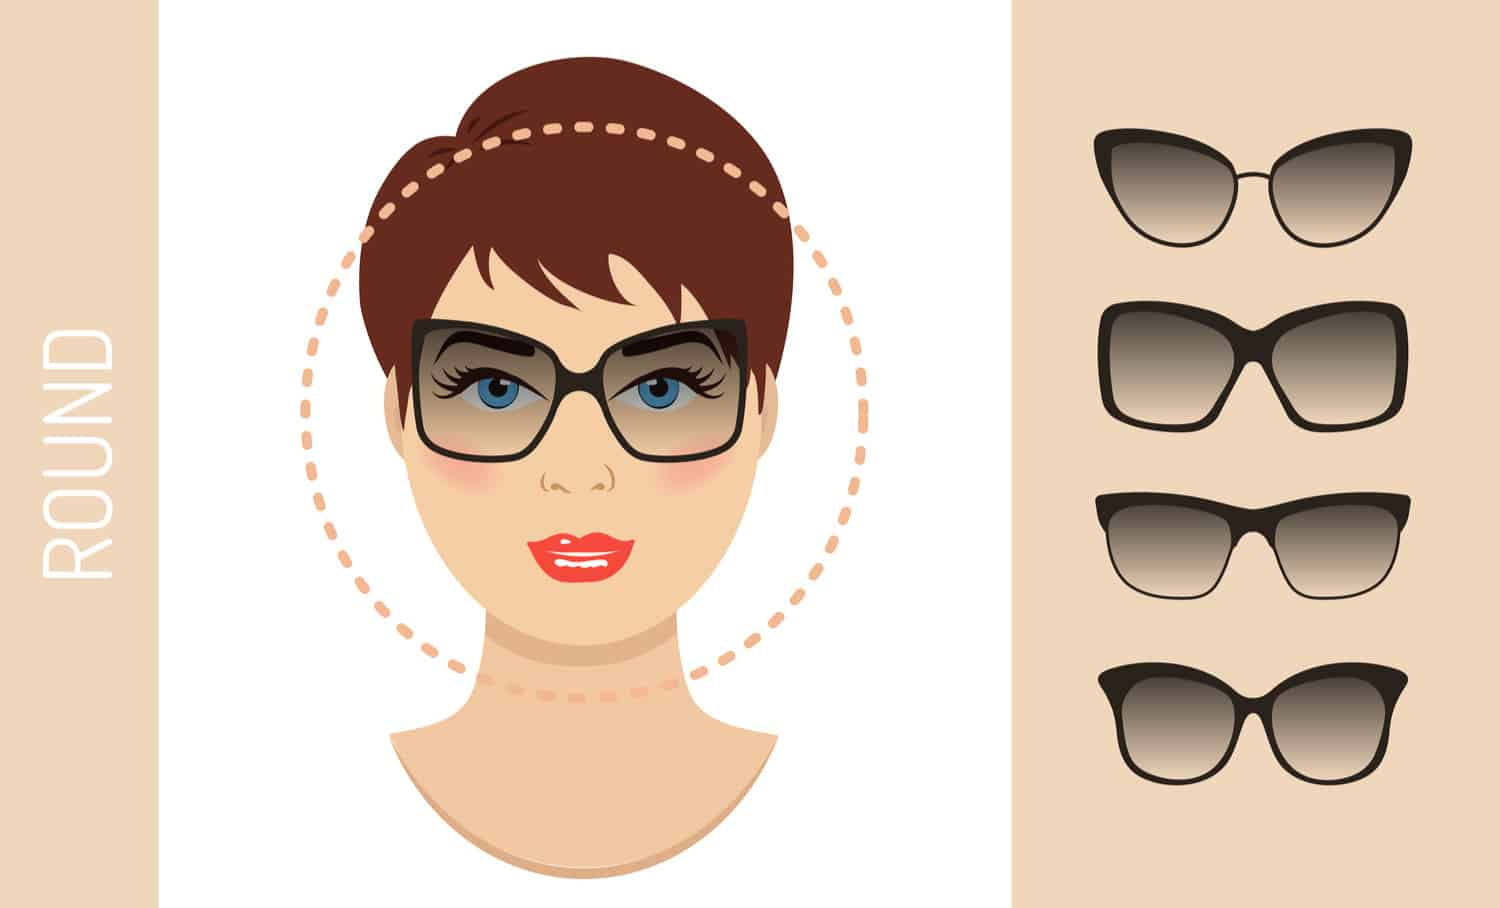 Women's glasses for circle-shaped face